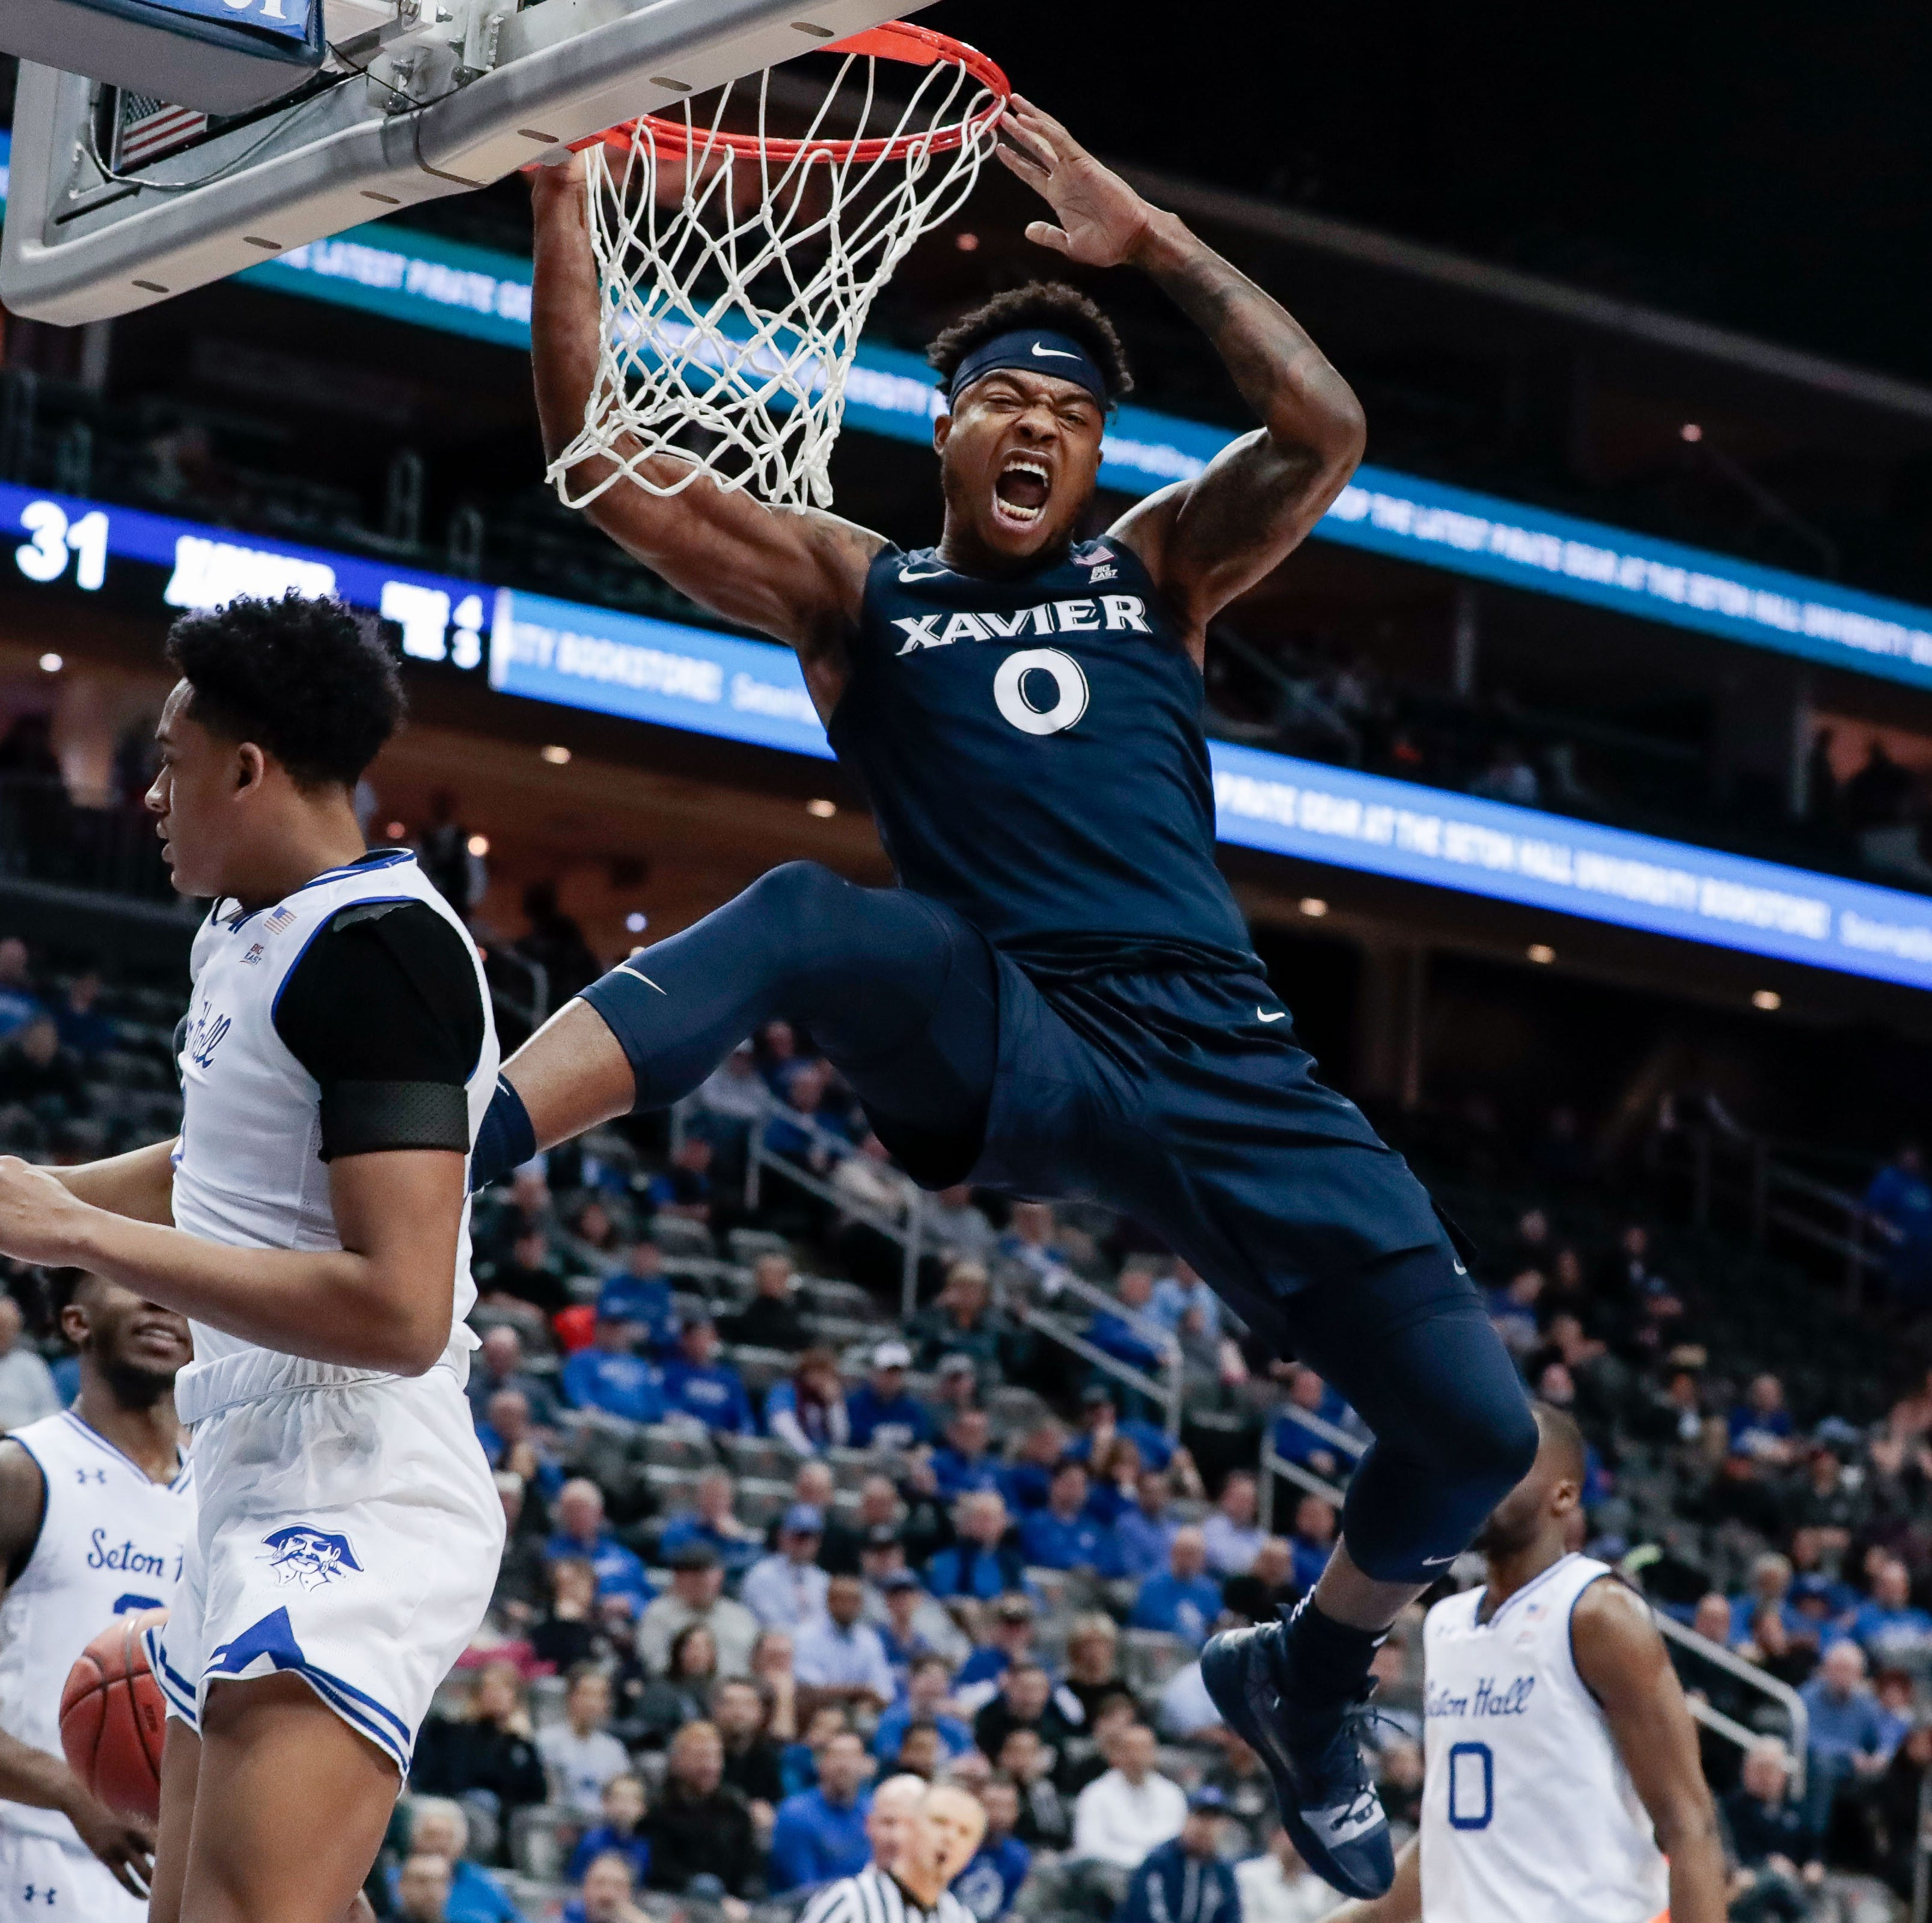 Seton Hall basketball: Stumble against Xavier makes Big Dance road harder